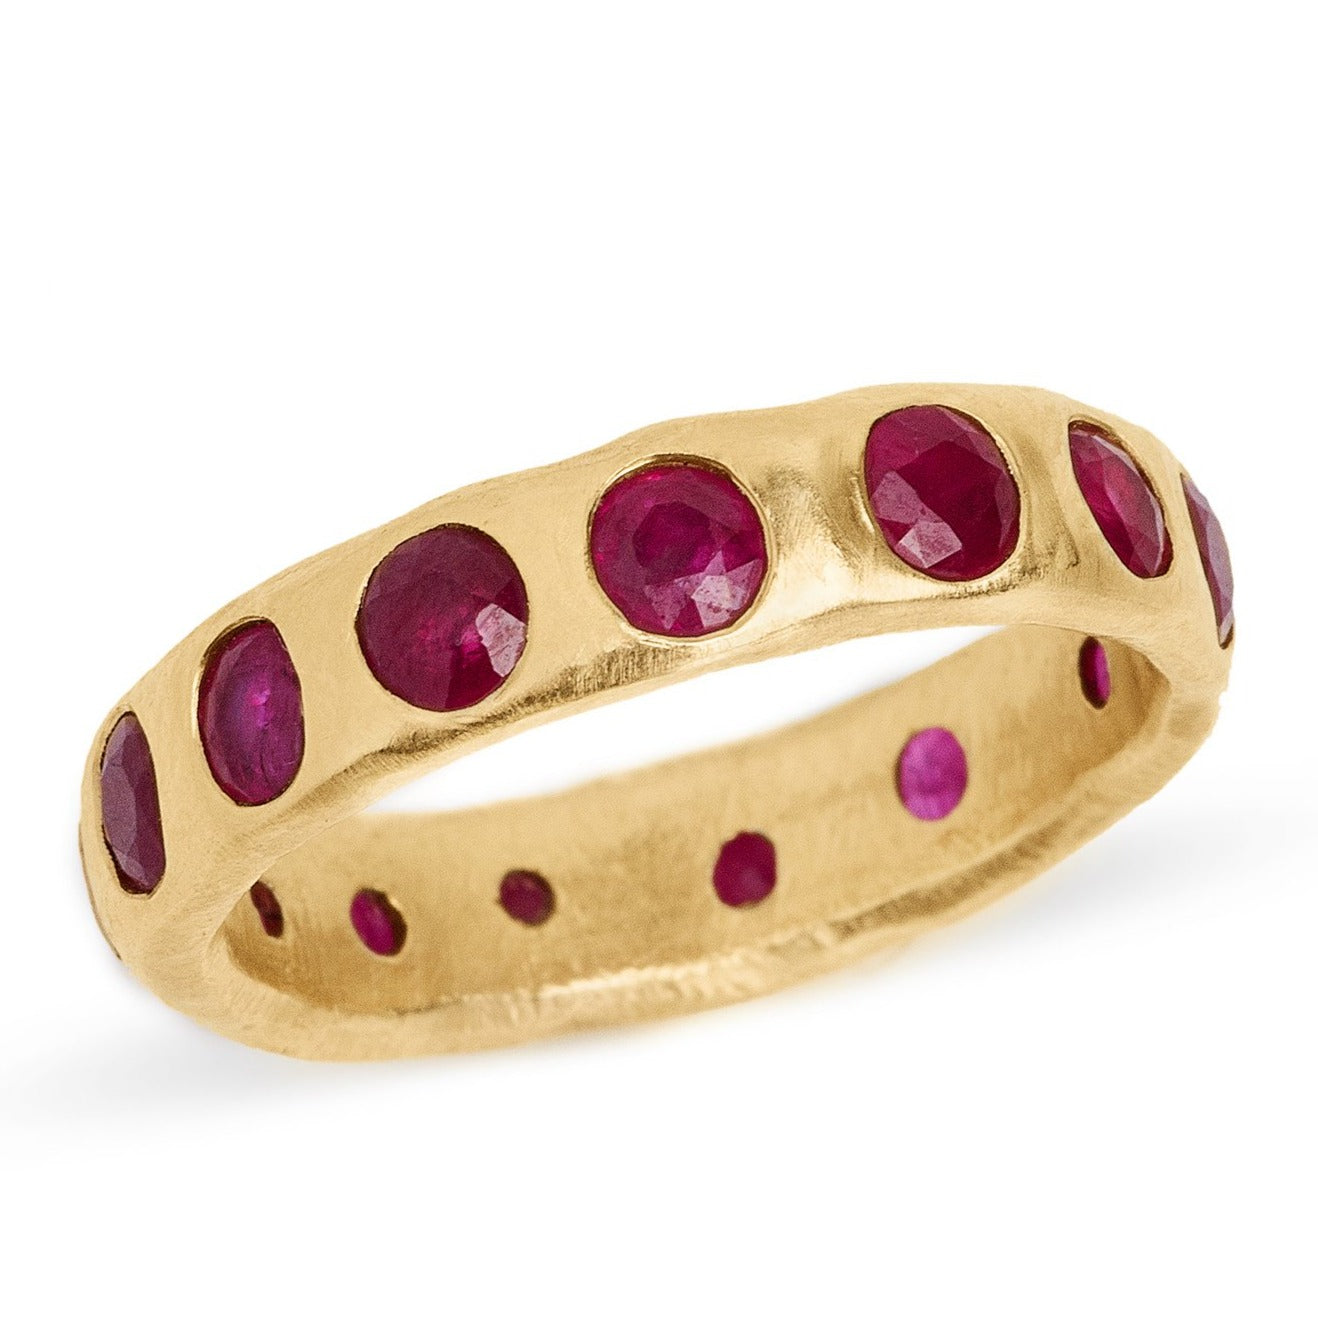 Ruby eternity band set in 14kt yellow gold wide ruby band.